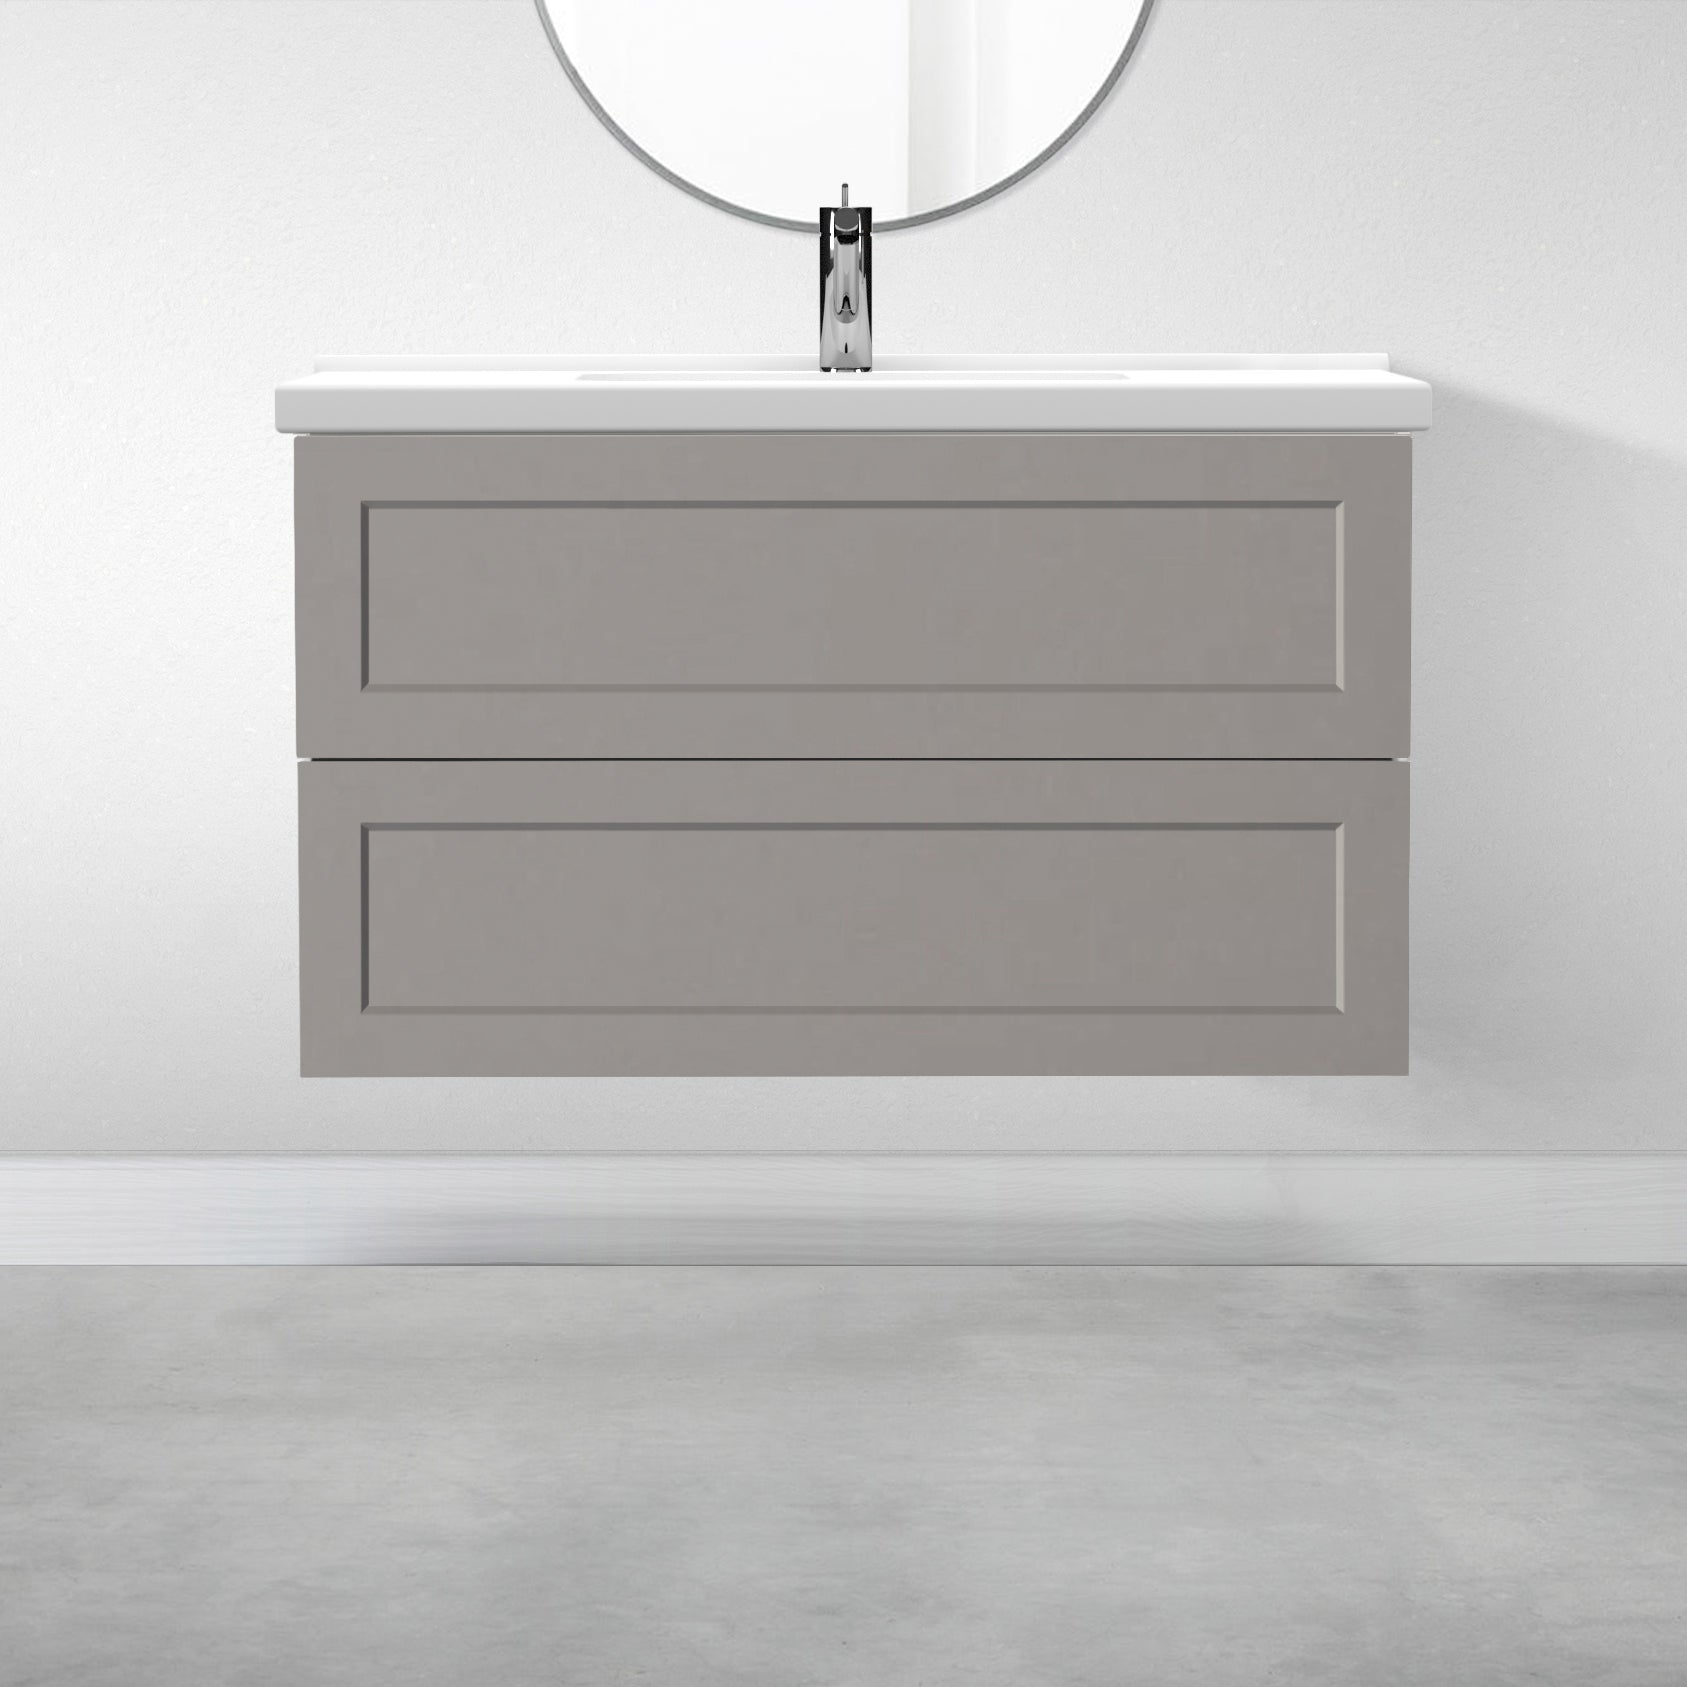 "2 Drawers - 39 3/8"" for Godmorgon Supermatte Shaker / Light Grey"